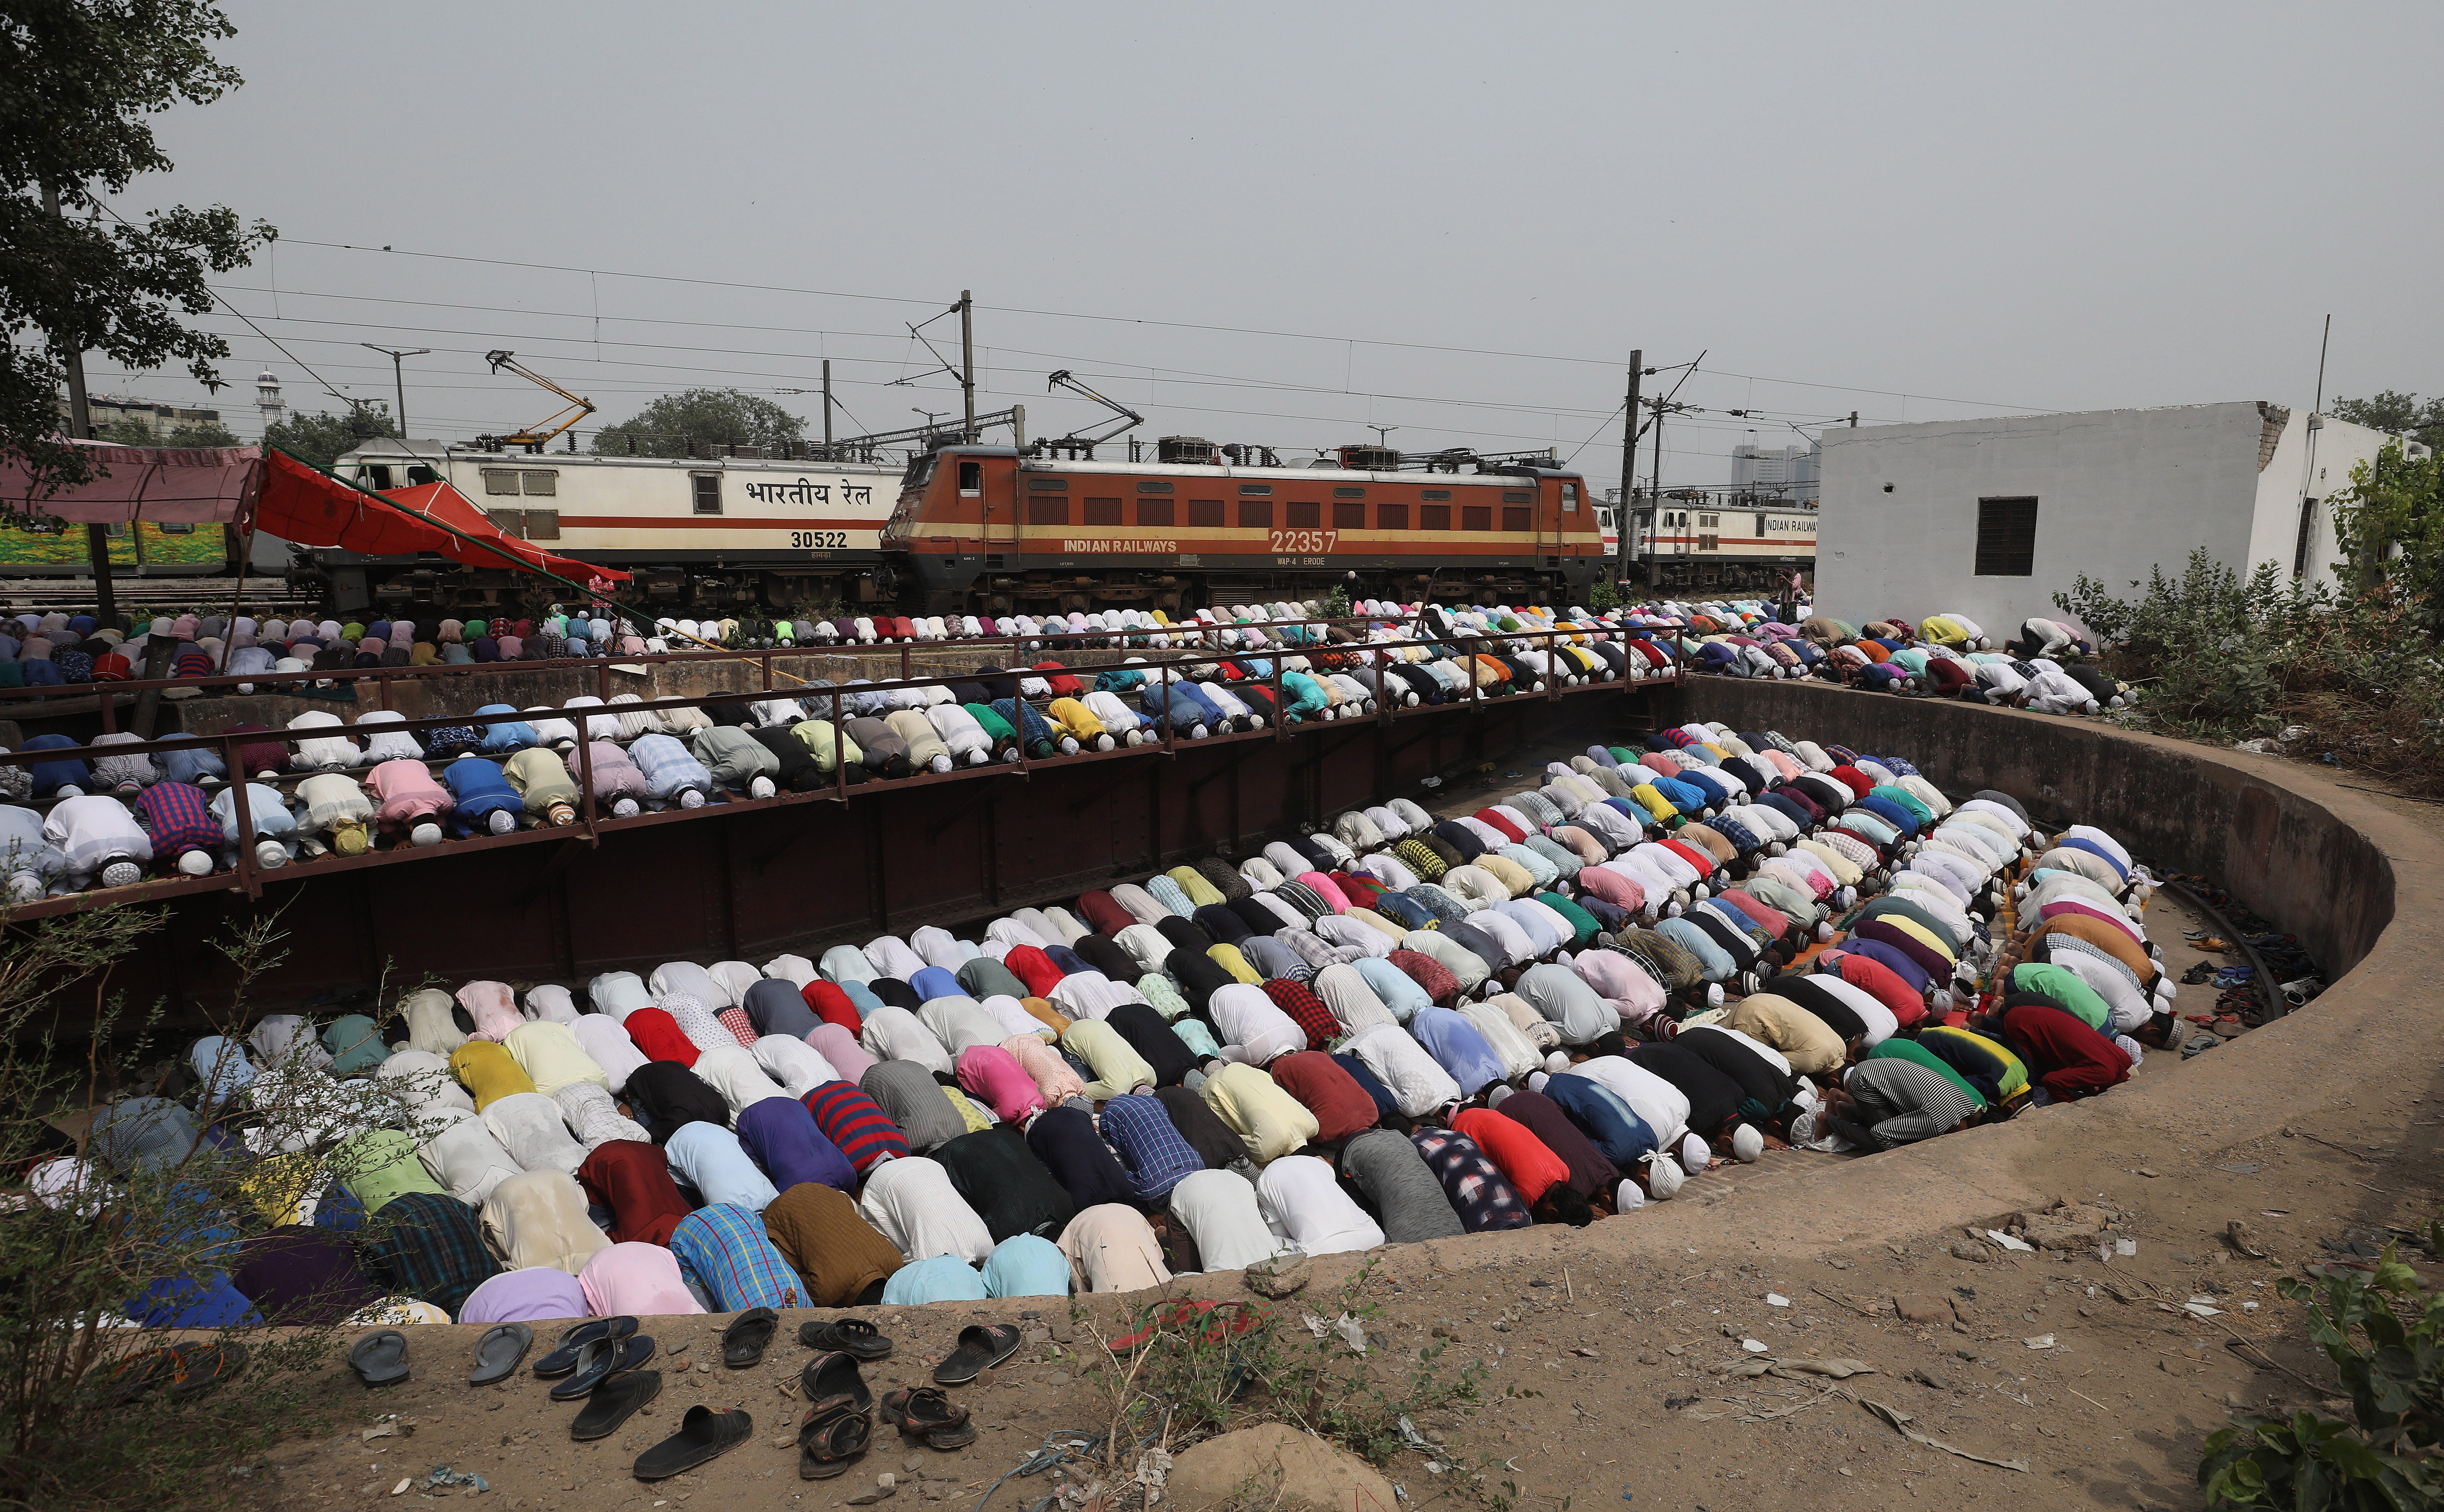 Indian Muslims attend the fourth and last Friday prayer of the Islamic holy fasting month of Ramadan at a mosque near New Delhi Railways station in New Delhi, India on June 8, 2018. Muslims around the world celebrate the holy month of Ramadan by pray